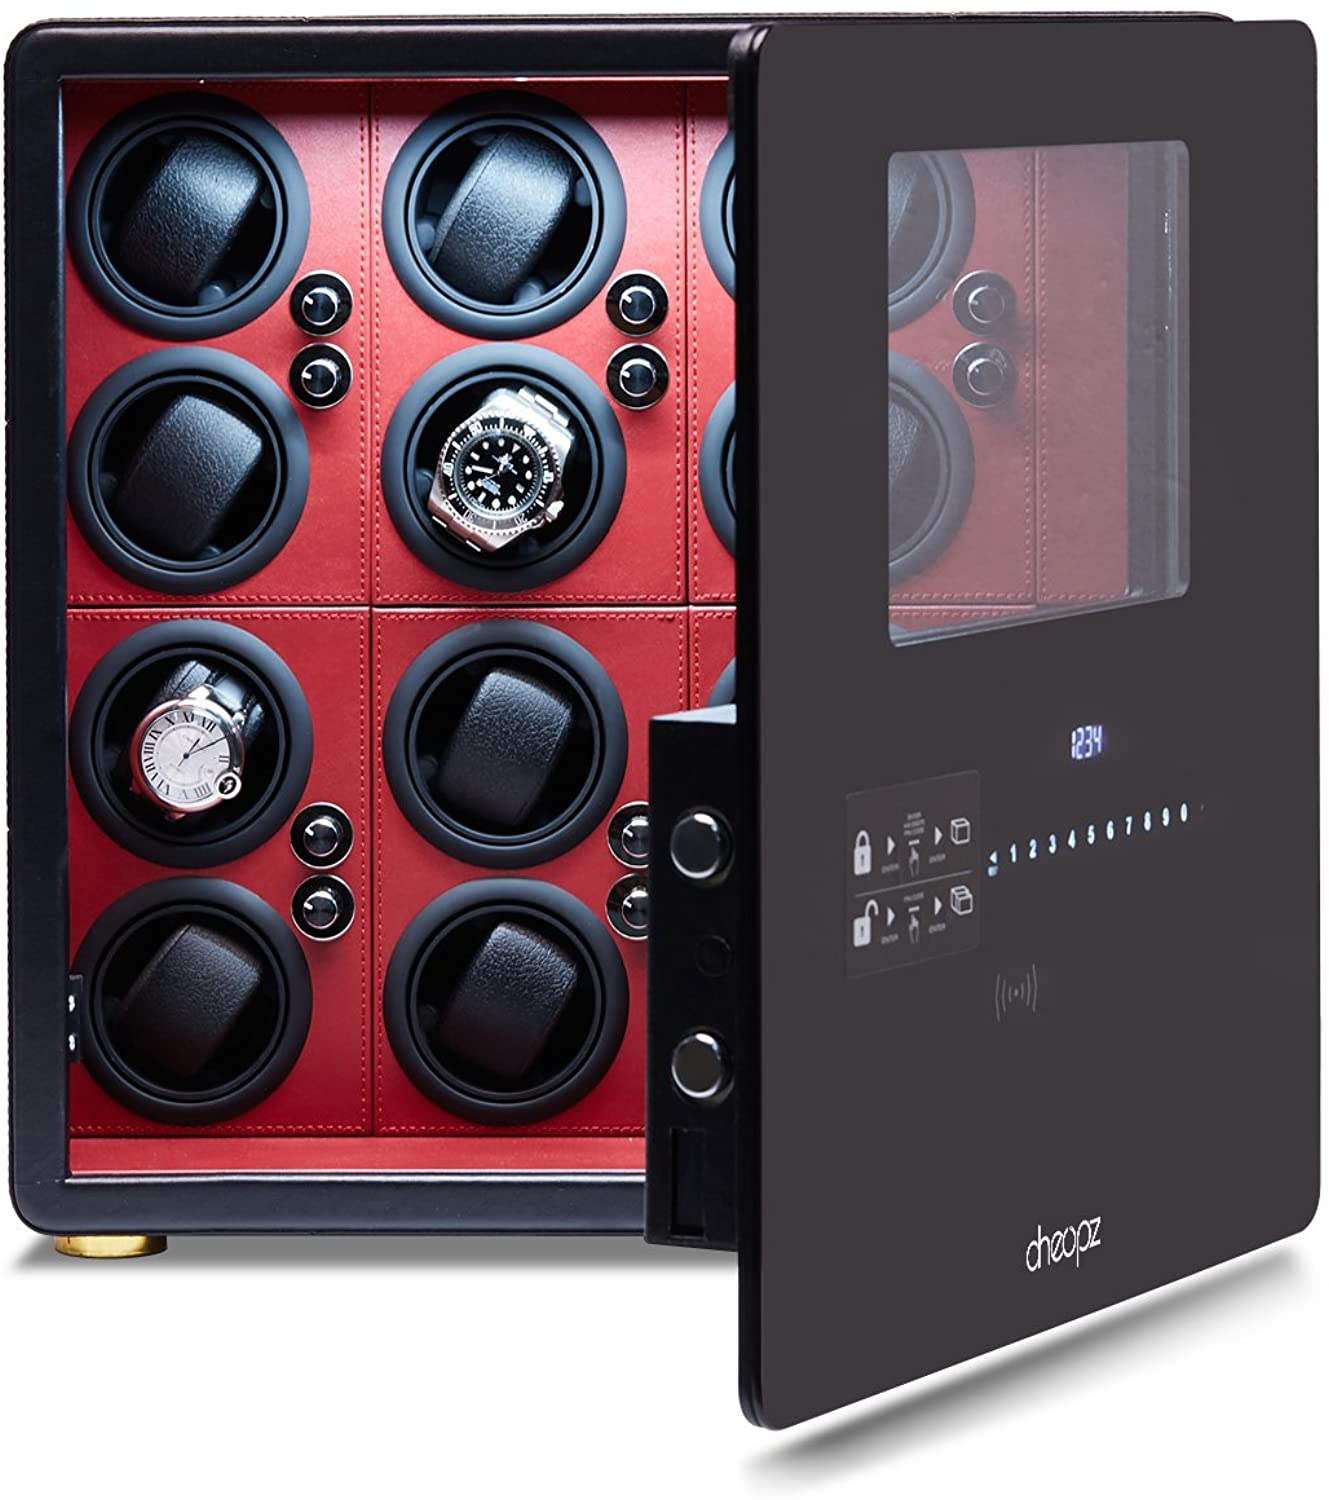 Cheopz Safe Watch Winder Box for 12 Automatic Watches with Dual Digital & Card Key Lock Security